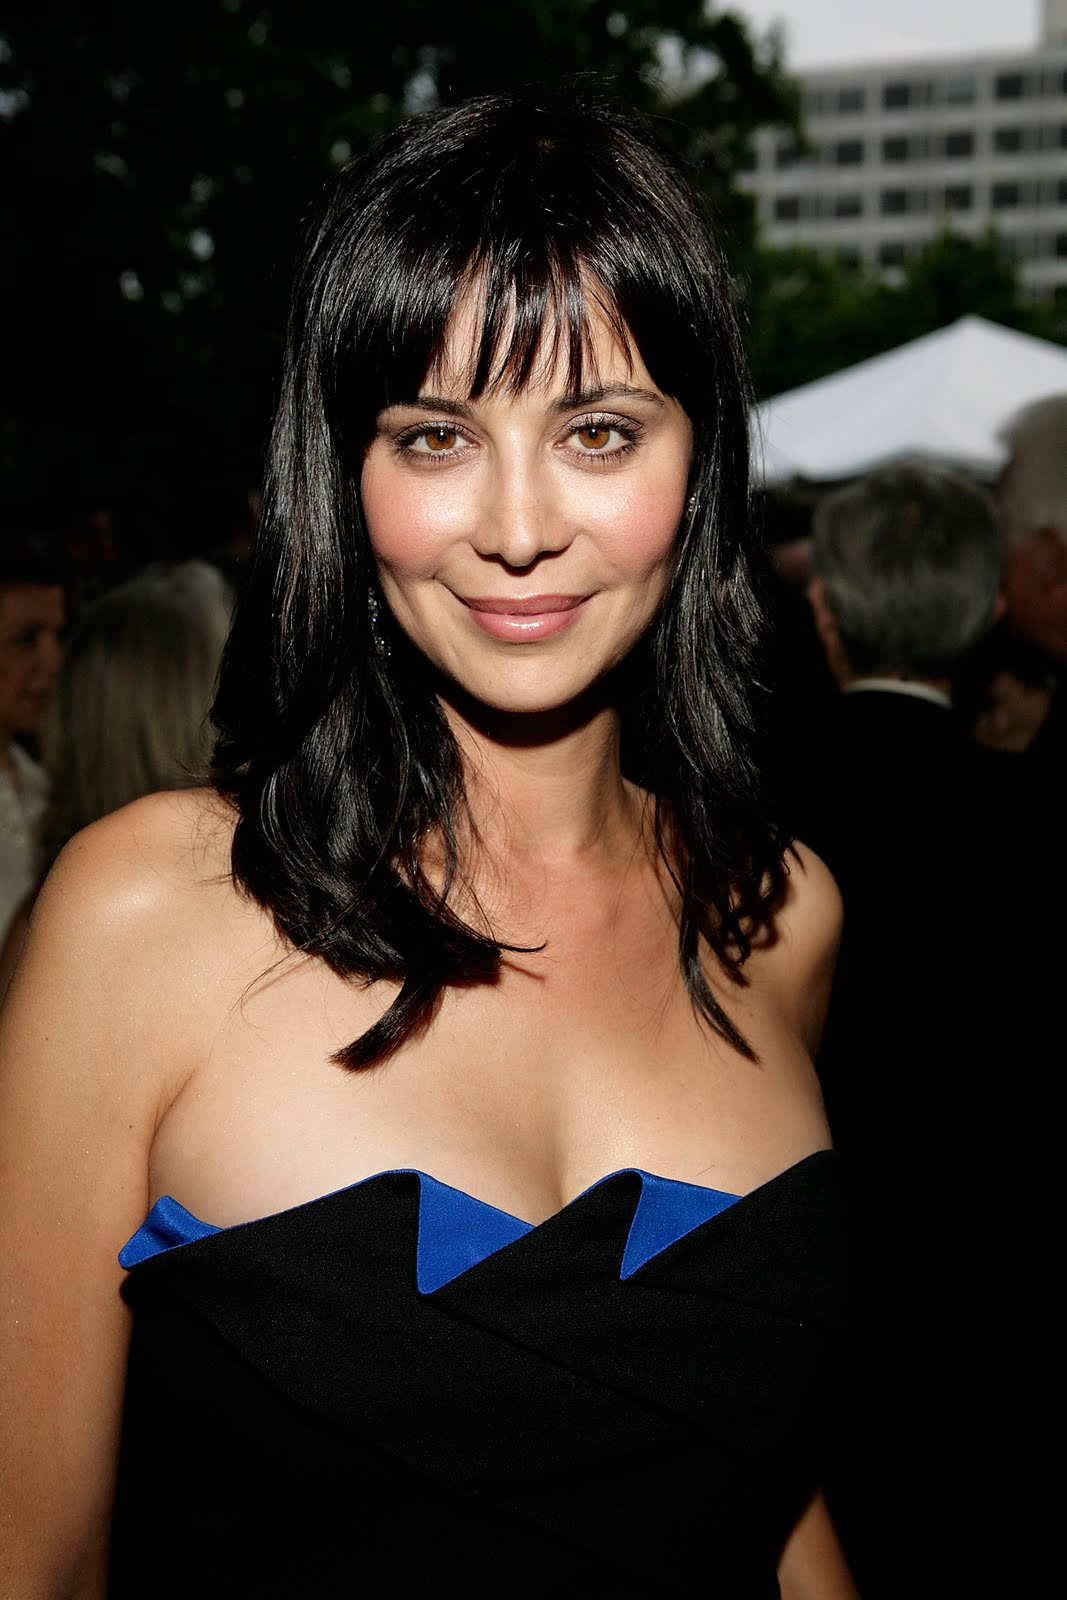 catherine bell 861985c9 uncensored vanessa hudgens nude photos ... come exposed and exploited in ...